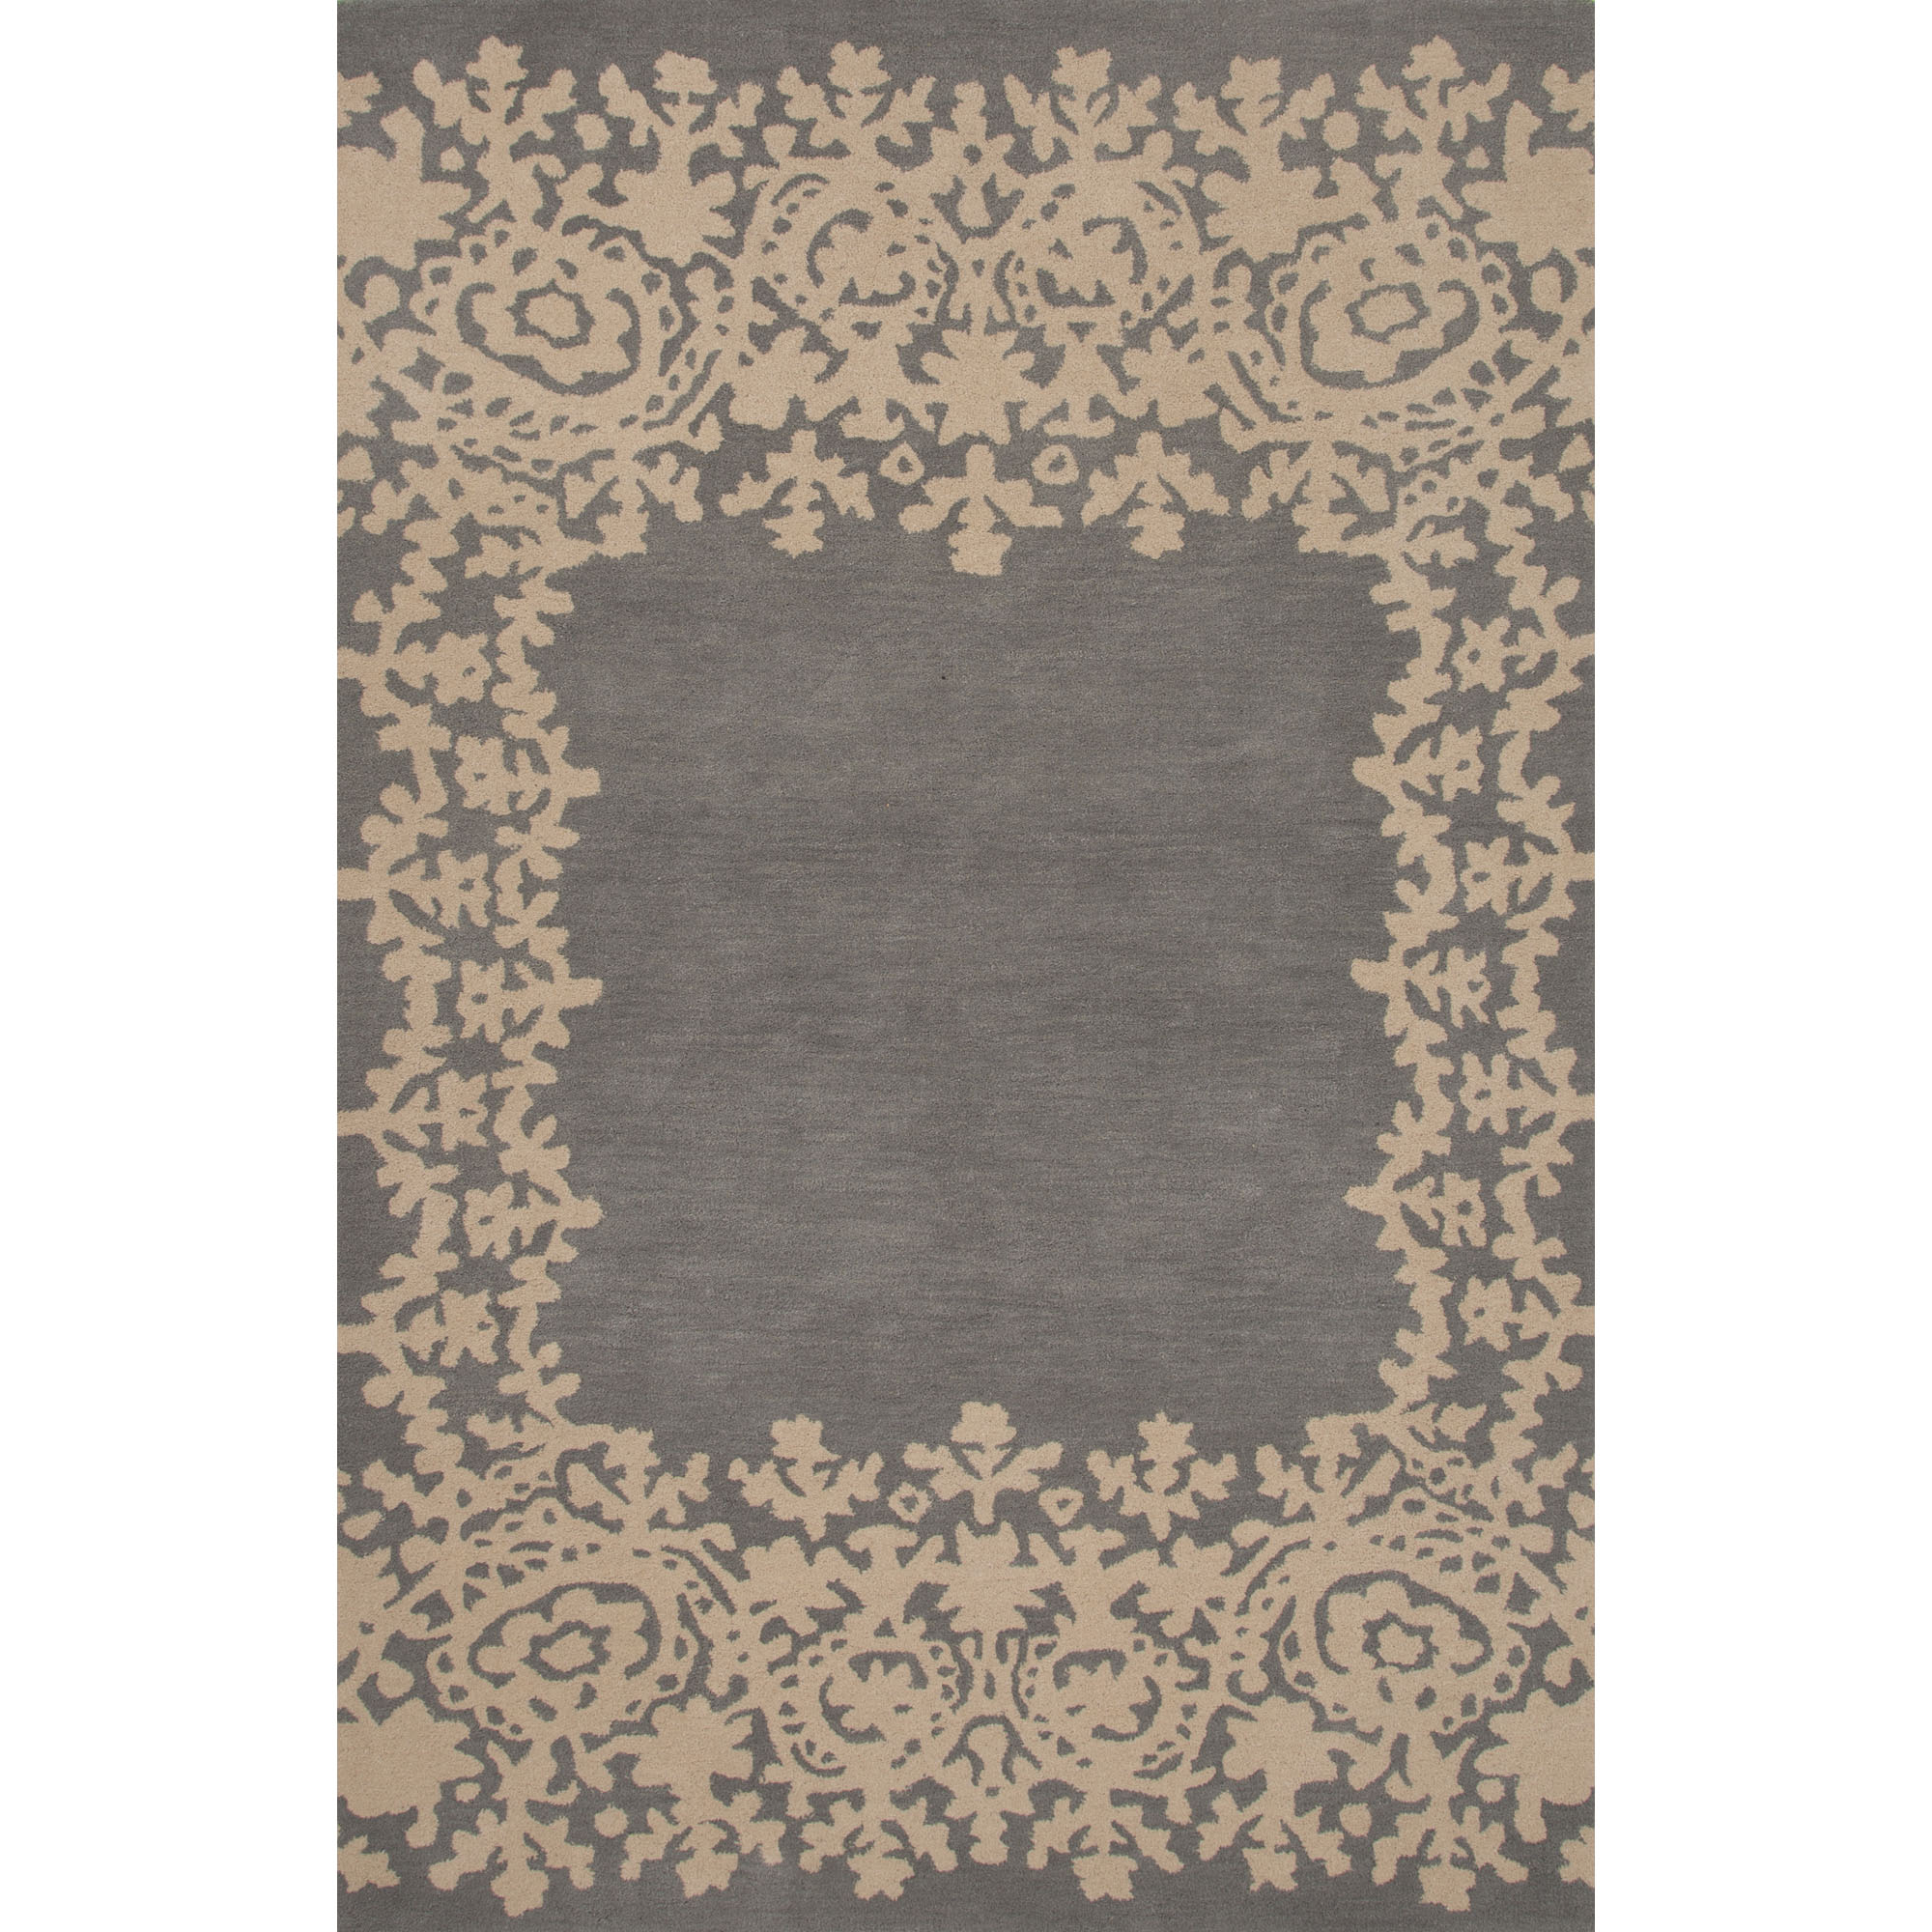 JAIPUR Rugs Traditions Made Modern Tufted 8 x 11 Rug - Item Number: RUG122205